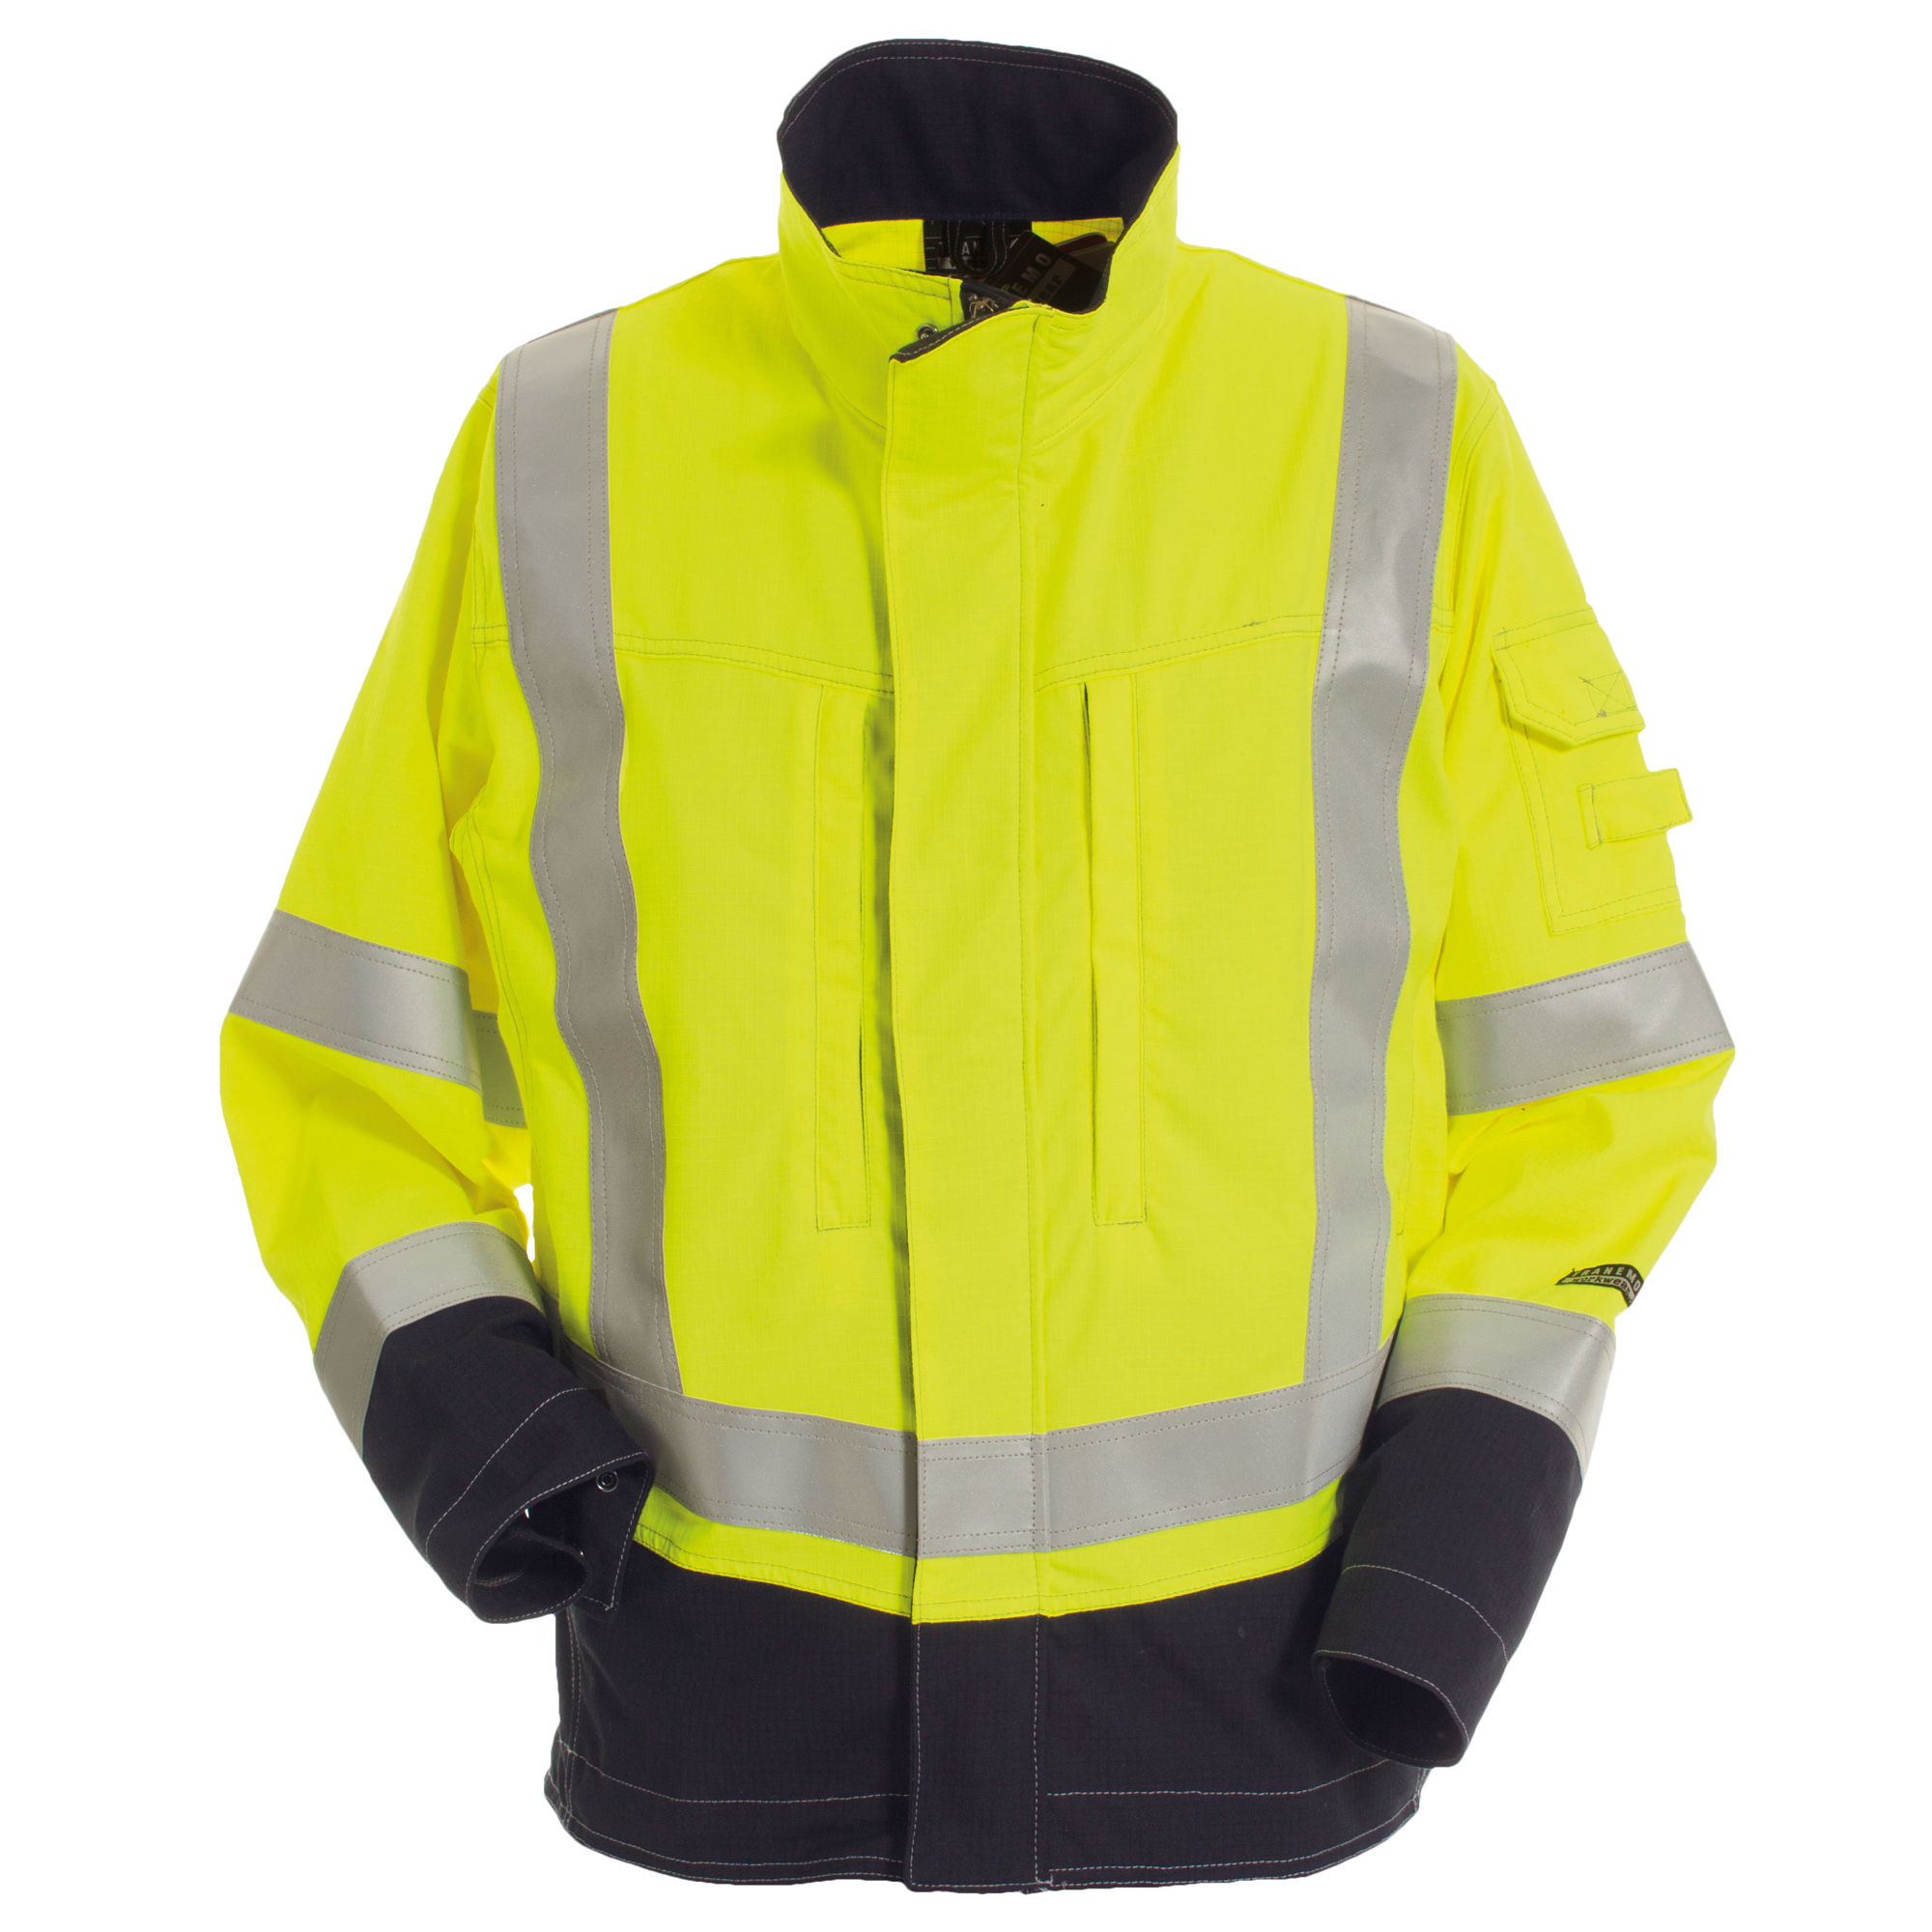 TRANEMO 5830 81 ARC FLASH JACKET - 9.5 CAL/CM2